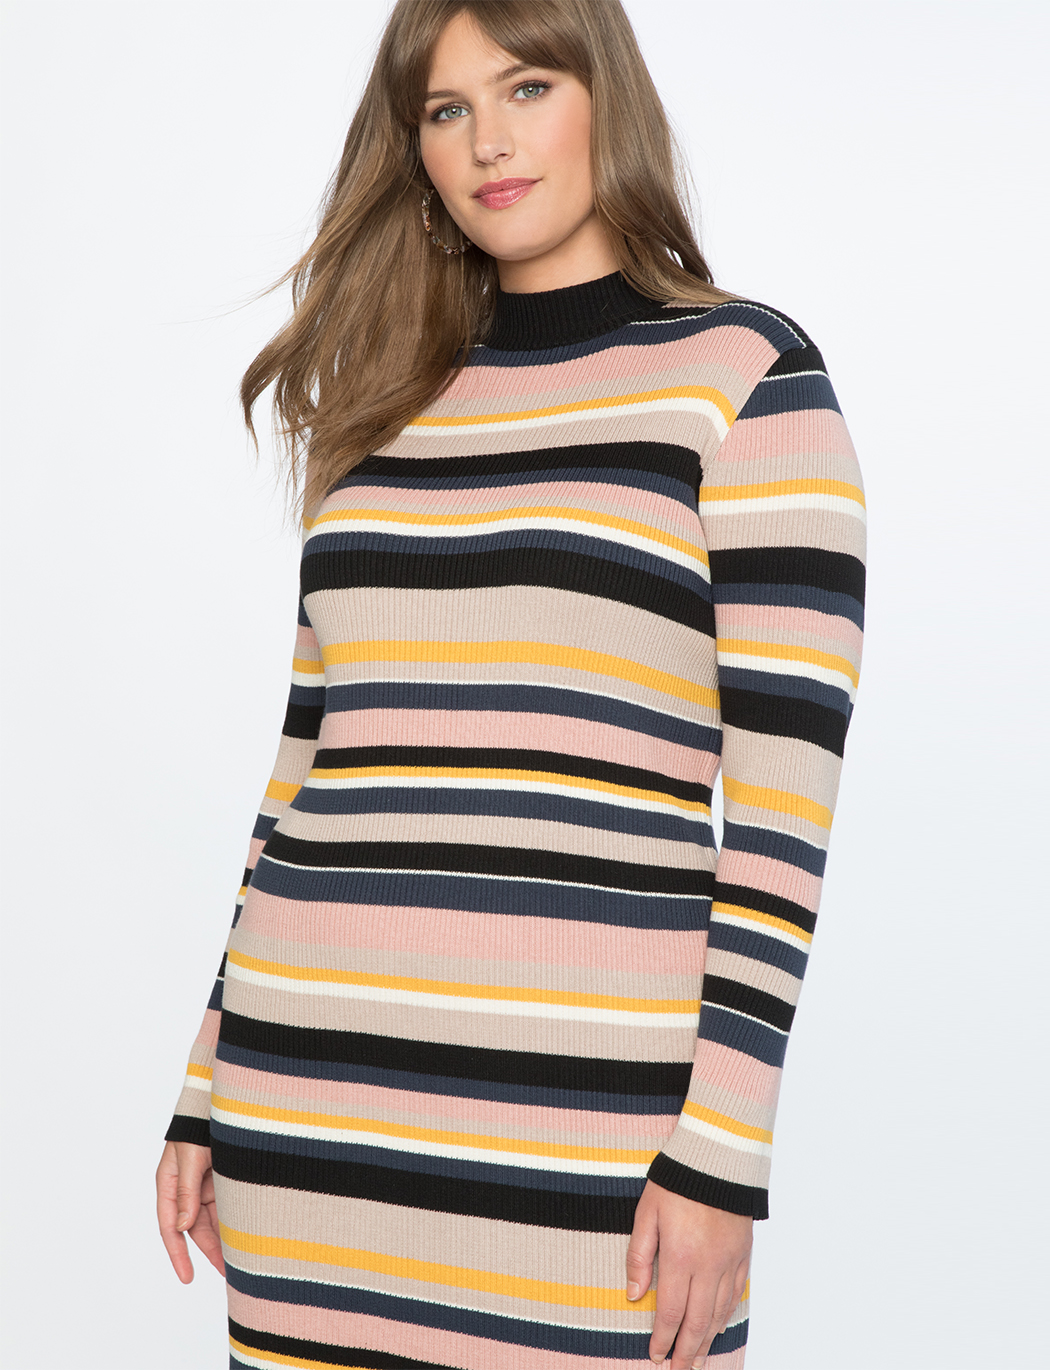 Striped Sweater Dress | Women\'s Plus Size Dresses | ELOQUII